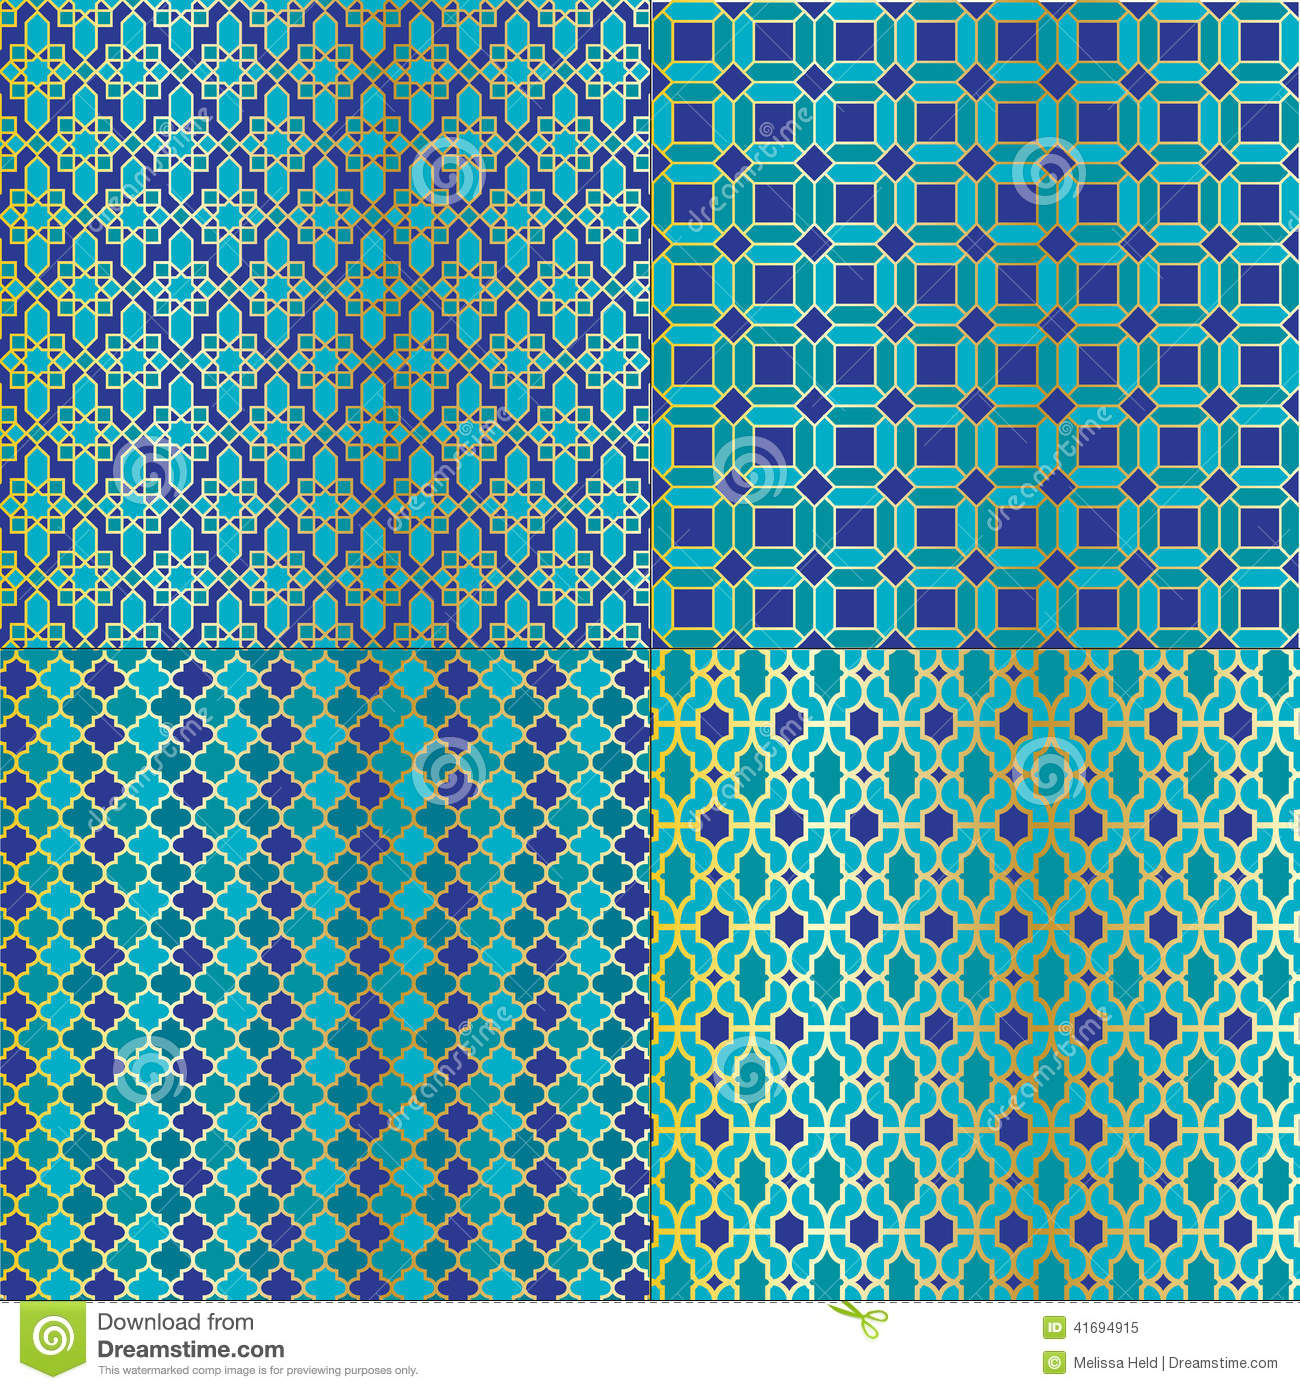 Moroccan Tile Patterns stock vector. Illustration of tile - 41694915